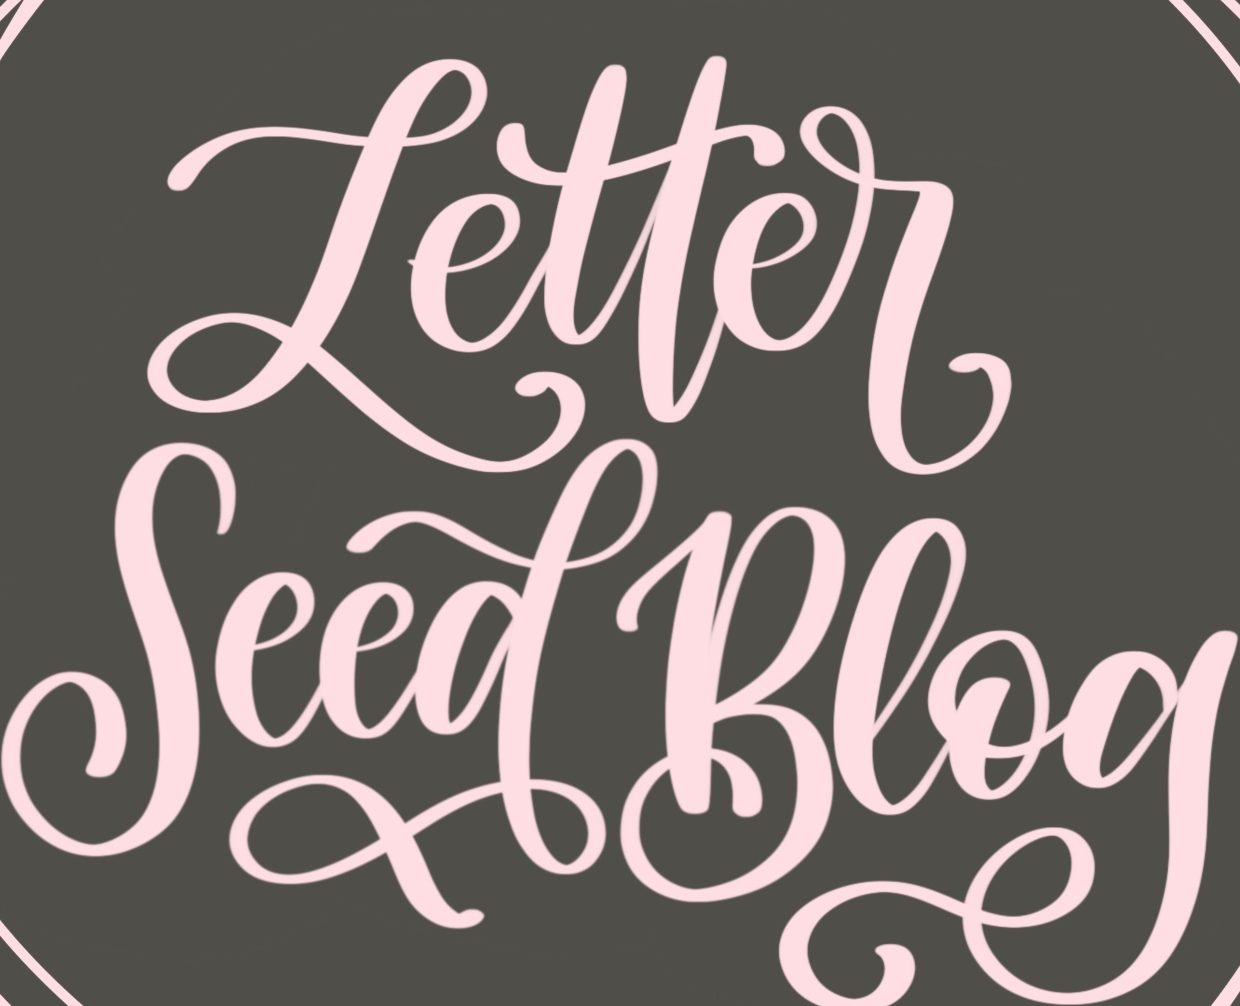 Letter Seed